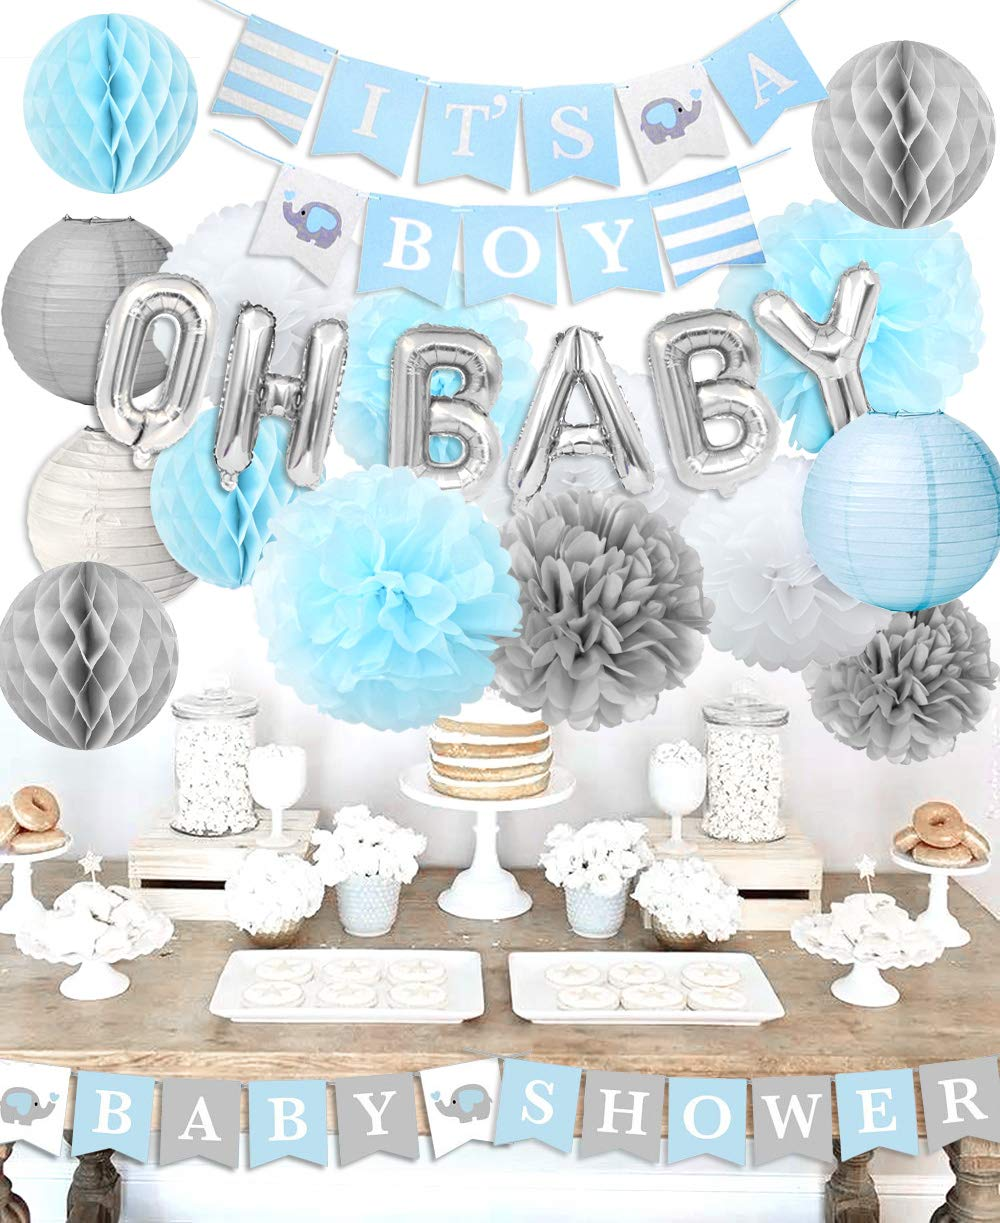 KREATWOW Boy Baby Shower Decorations - It's A Boy Baby Shower Decorations Kit with Oh Baby Balloons It's A Boy Baby Shower Banner